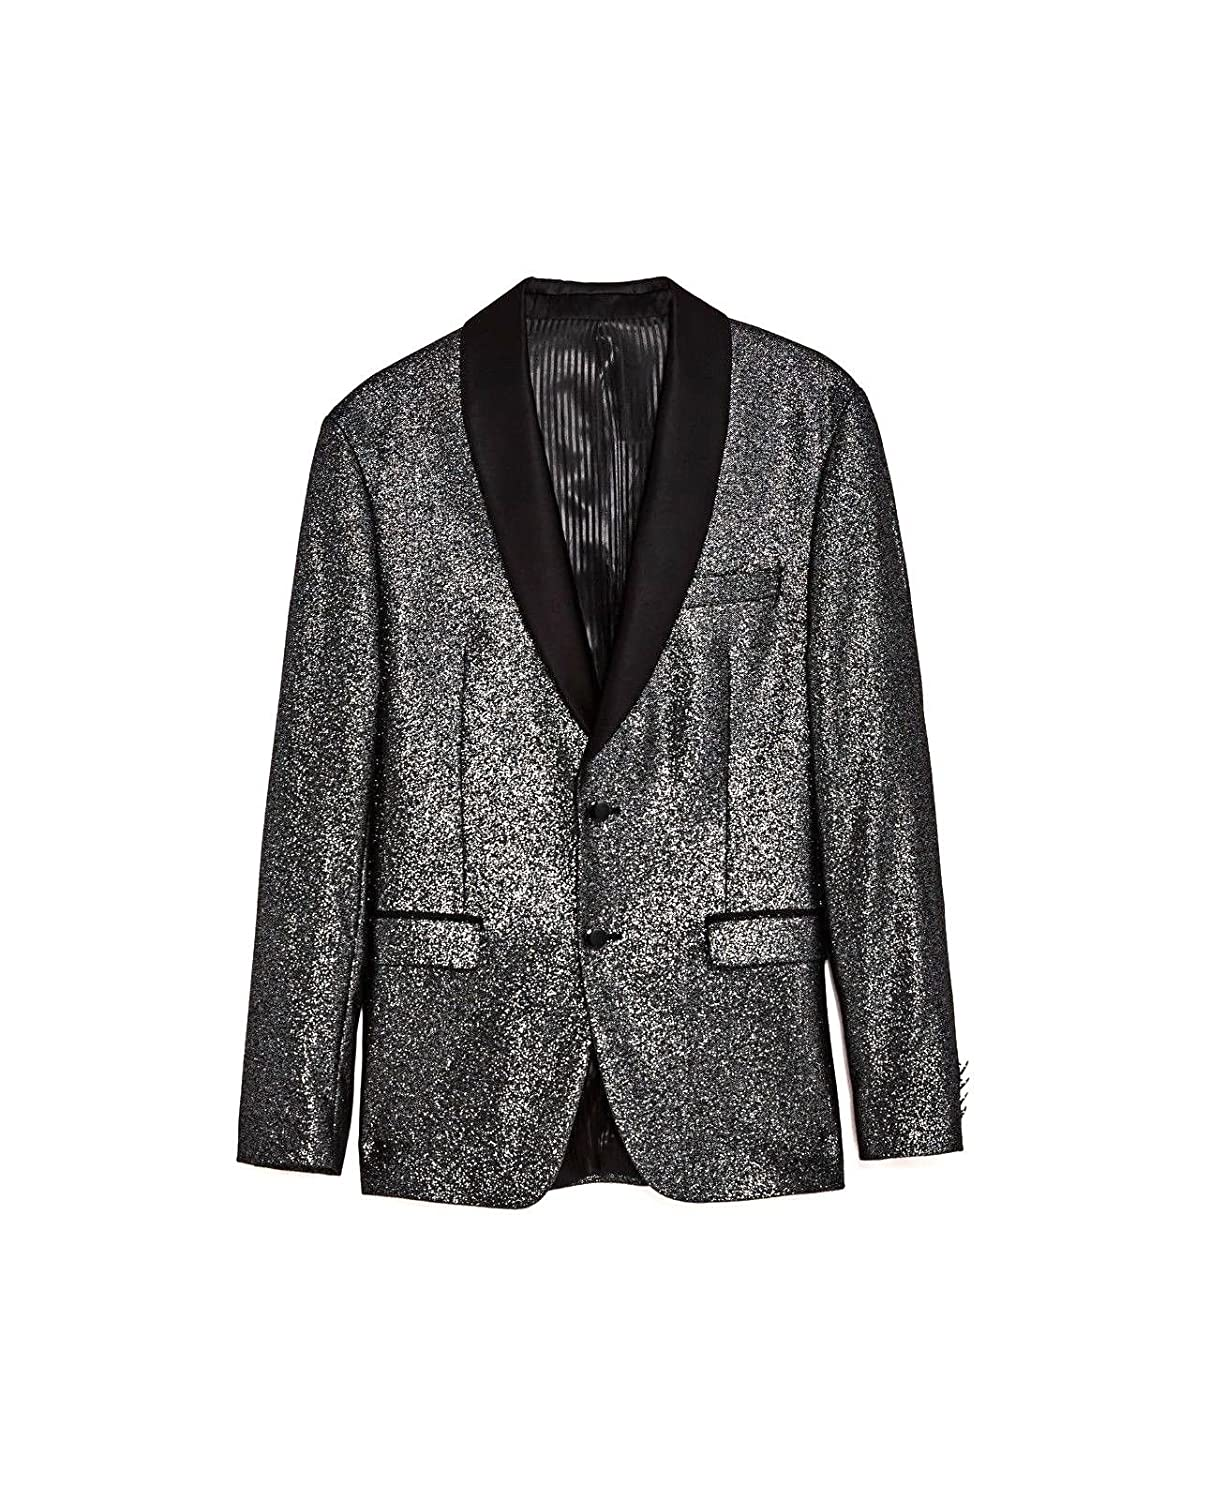 2d377e33 Zara Mens Shiny Tuxedo Blazer Size UK 36 Small: Amazon.co.uk: Clothing